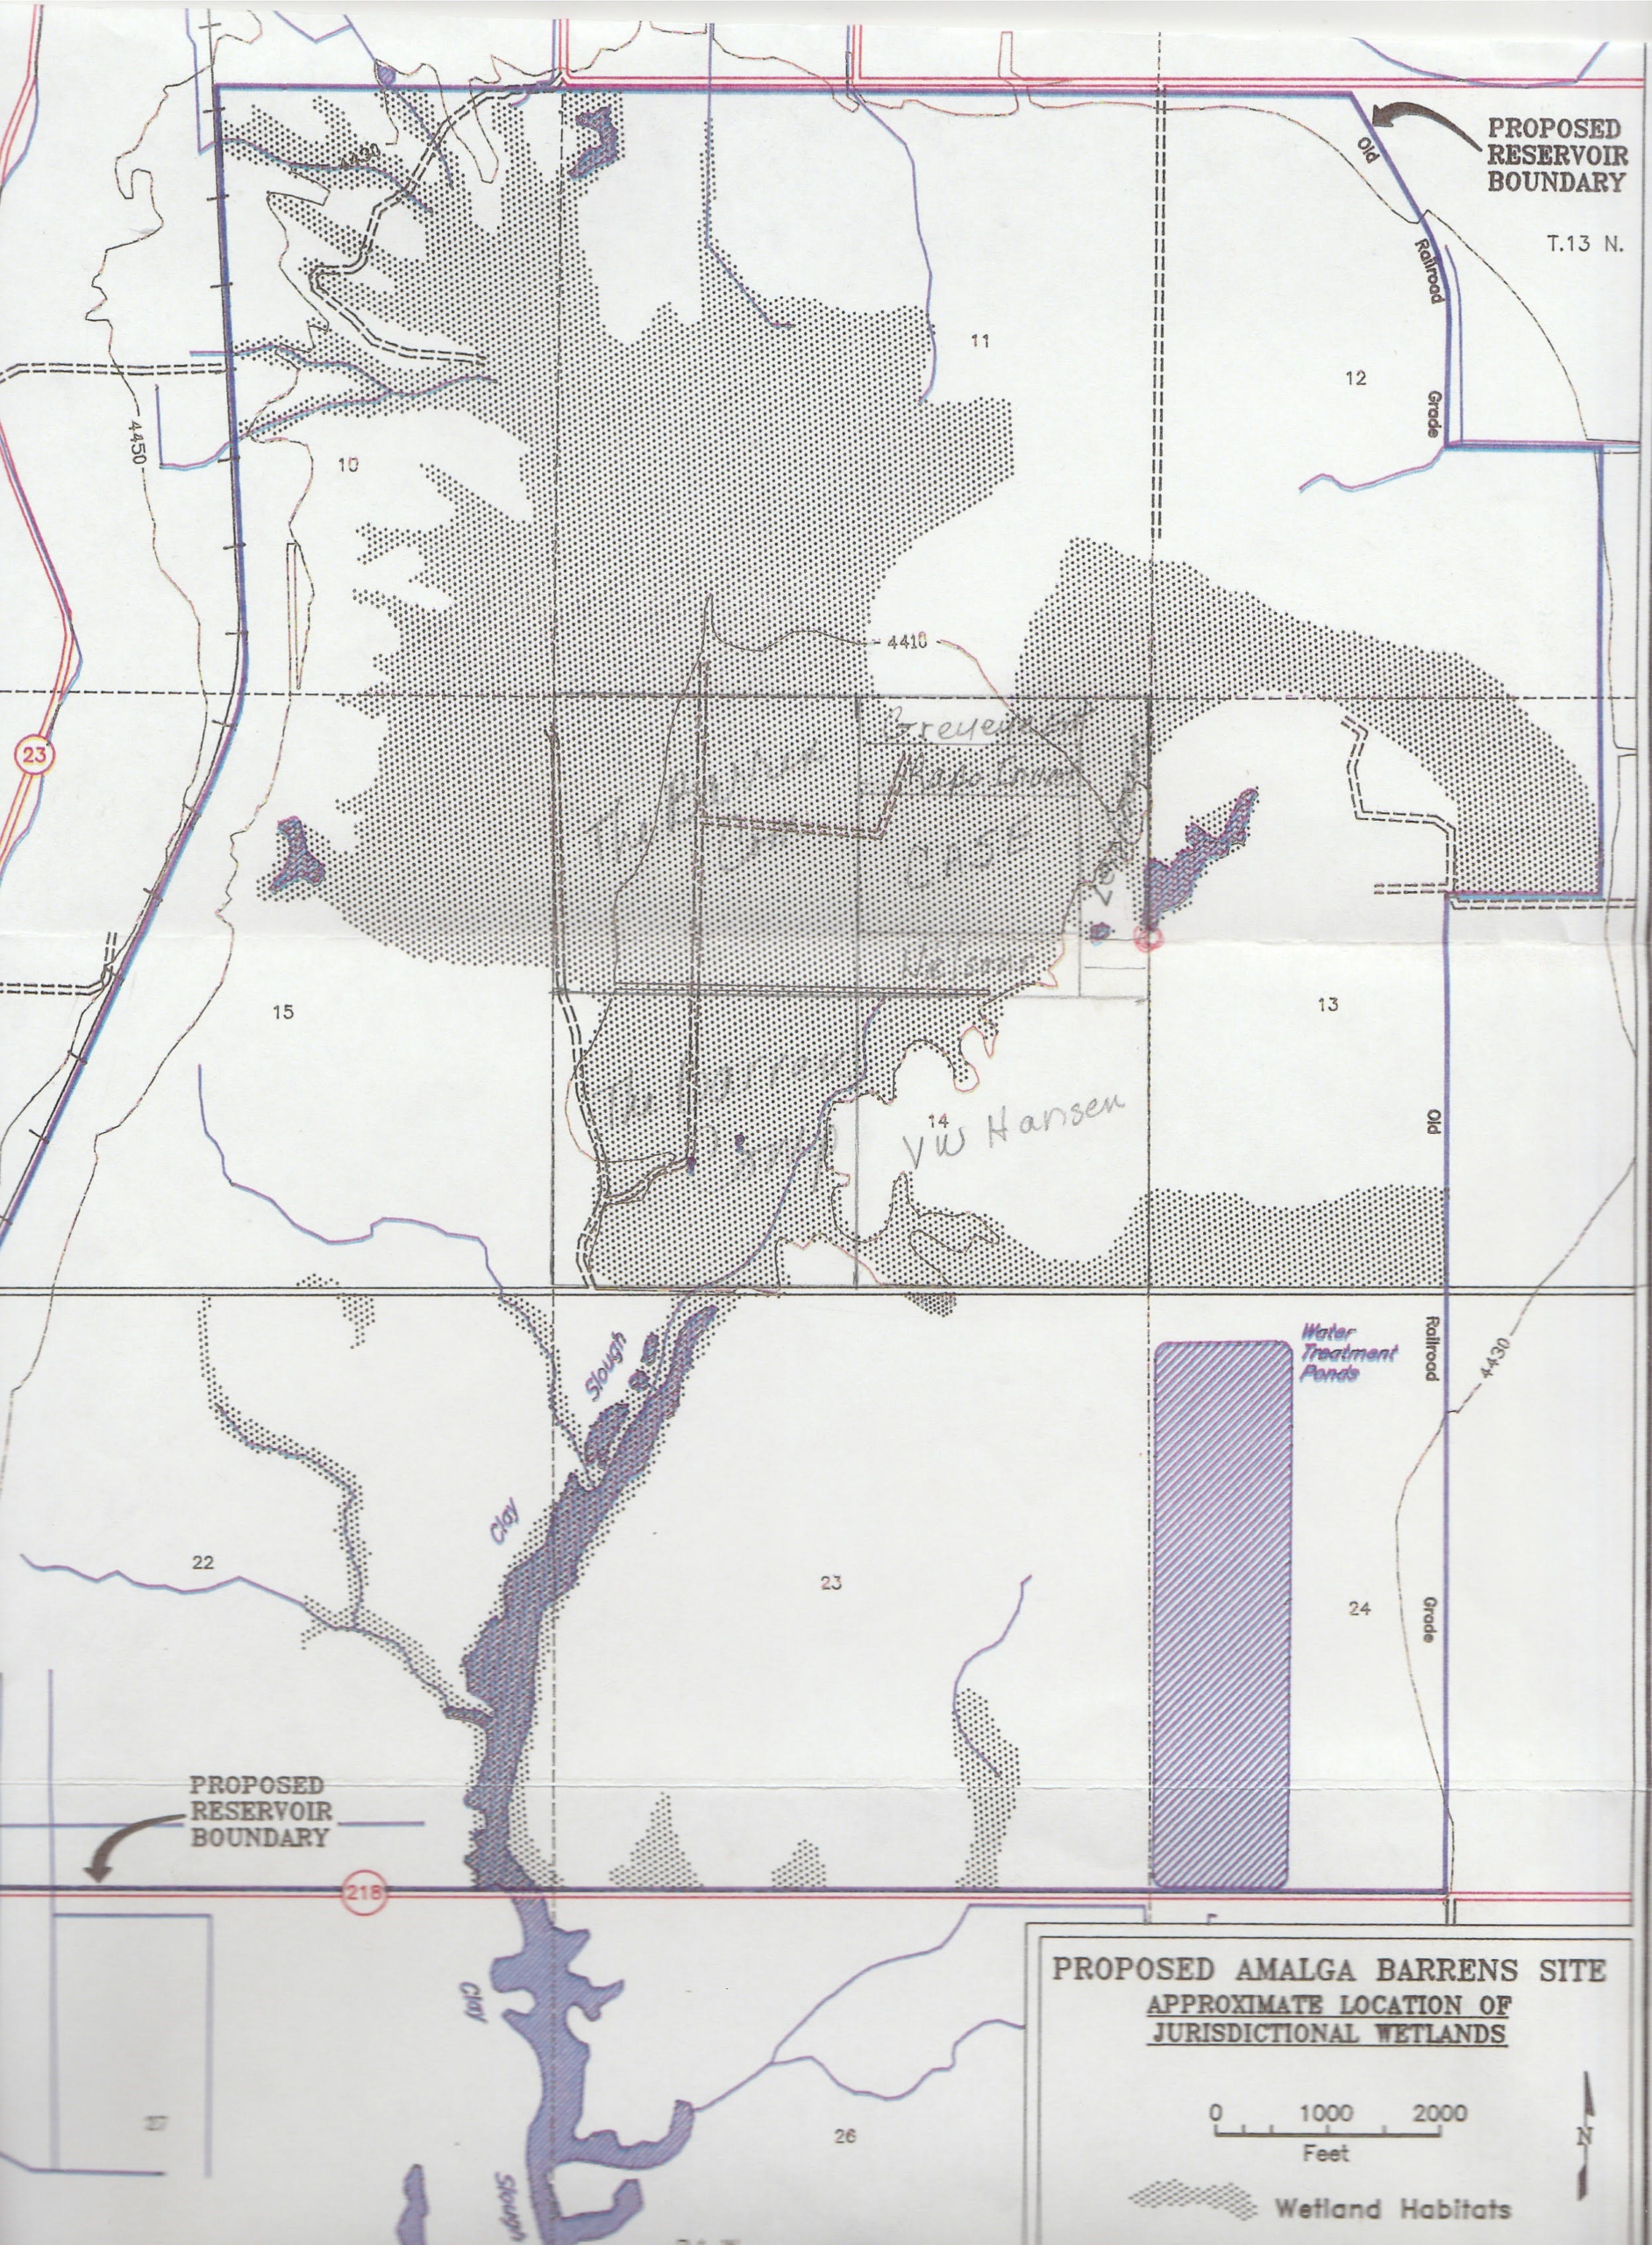 Proposed Amalga Barrens Site, Approximate Location of Jurisdictional Wetlands, Source Unknown